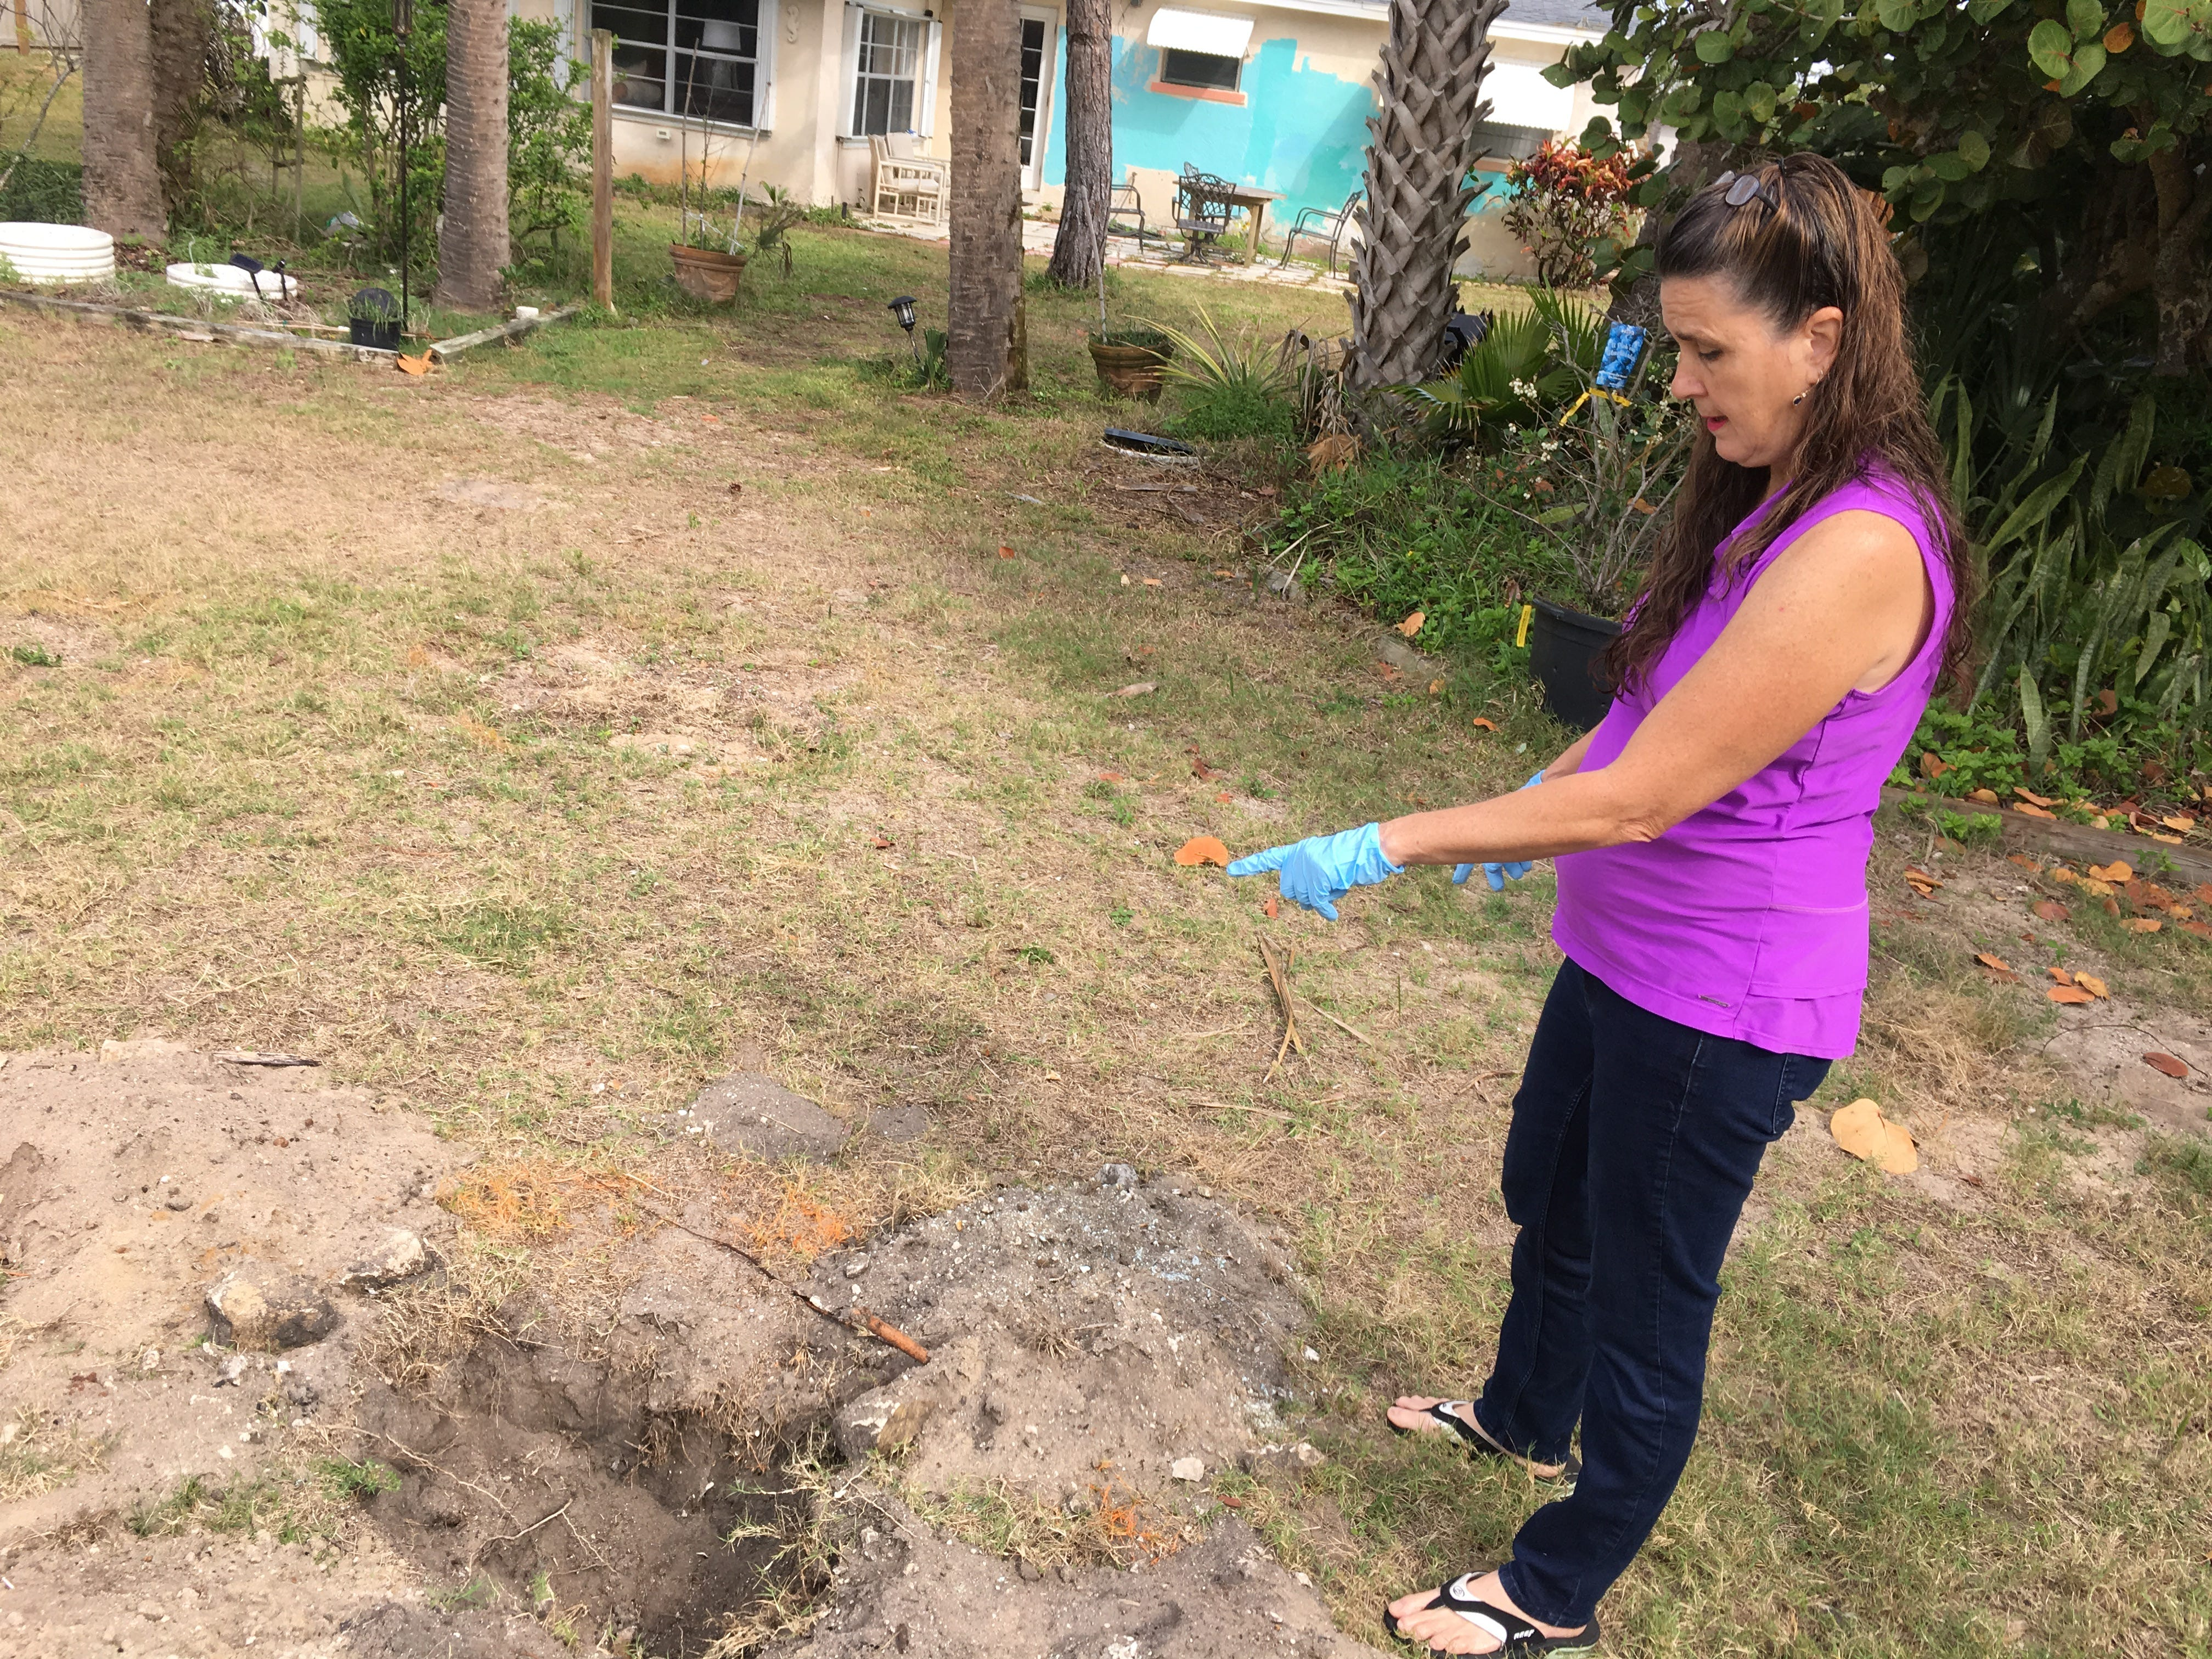 EPA tests soil in South Patrick Shores, in wake of cancer cluster concerns